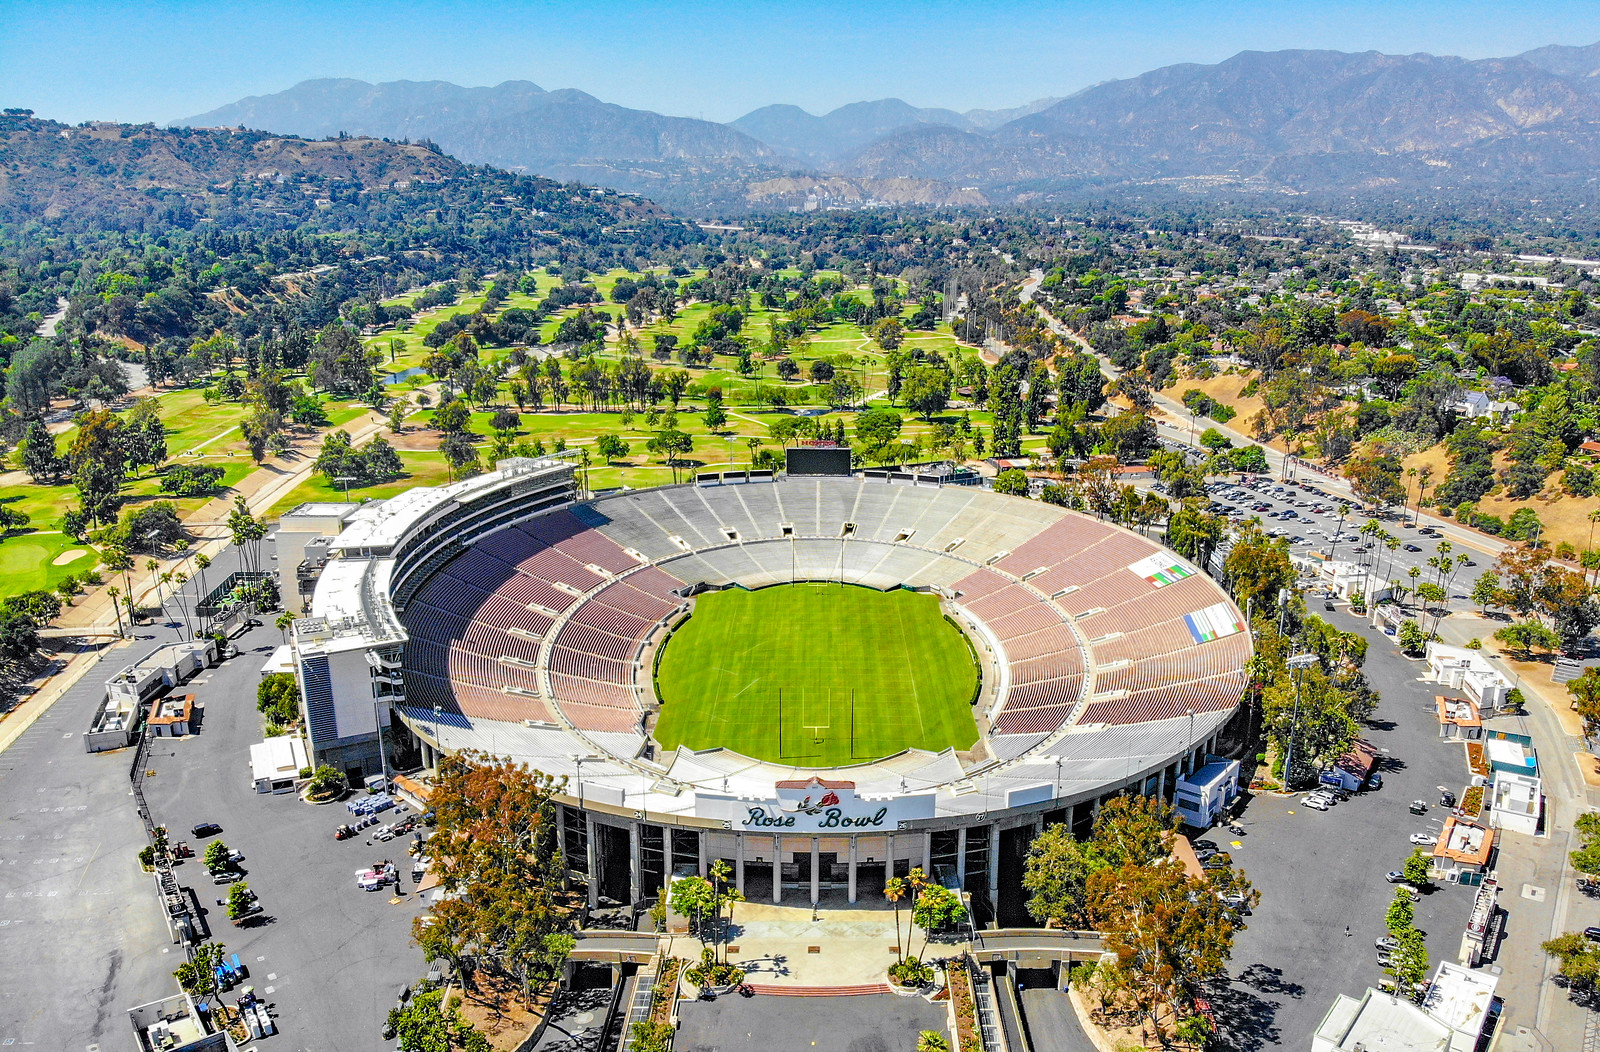 2018.06.17 Over the Rose Bowl, Pasadena, CA USA  0039